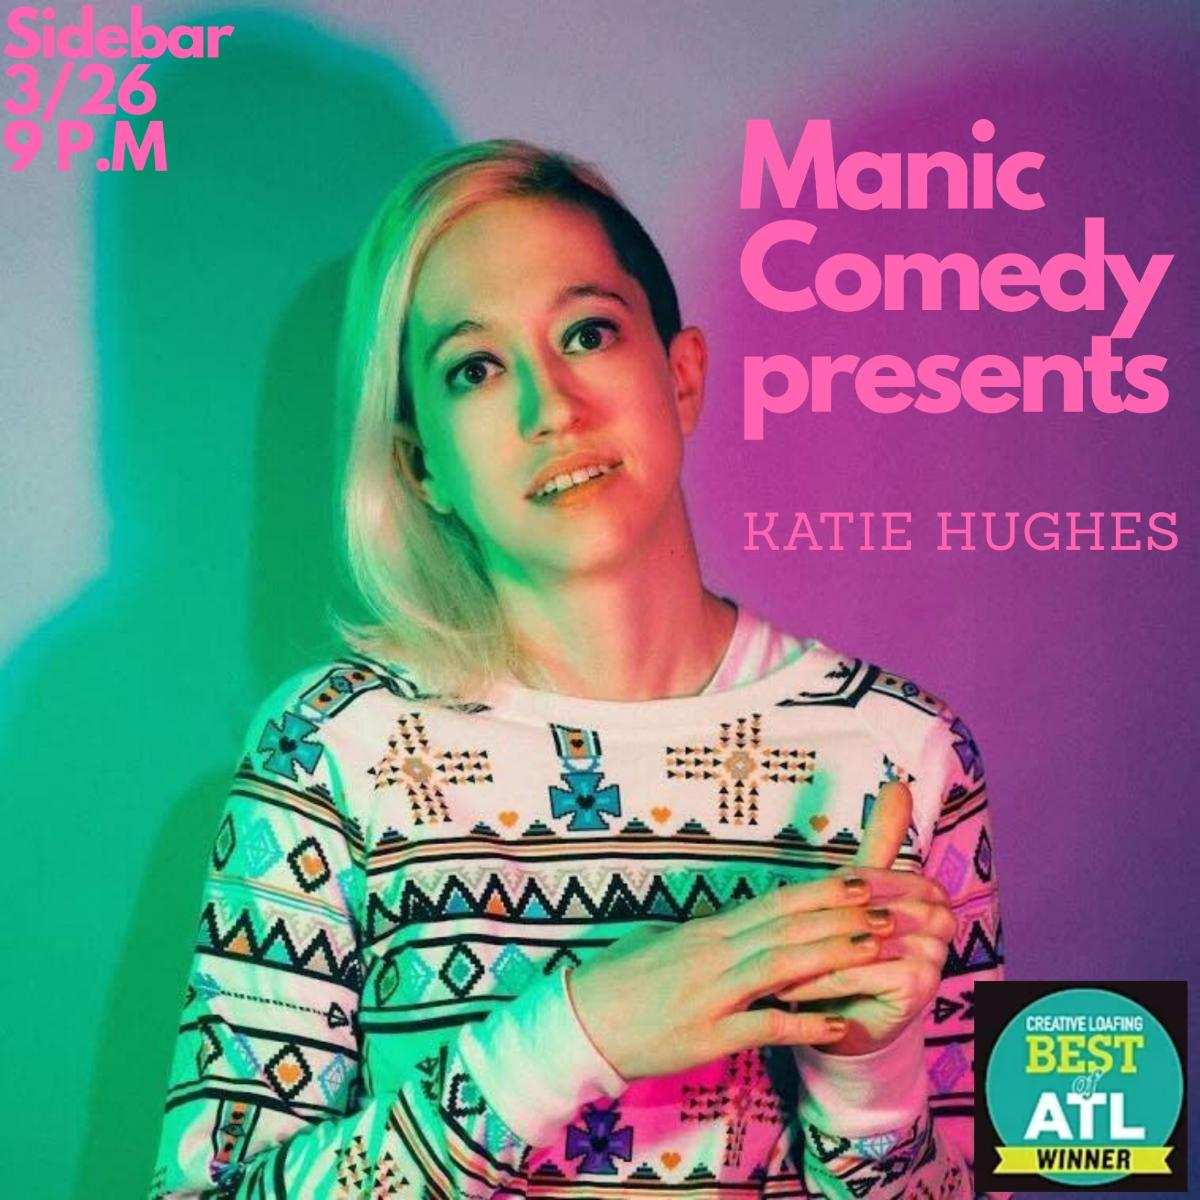 Manic Comedy presents Katie Hughes and Katherine Blanford